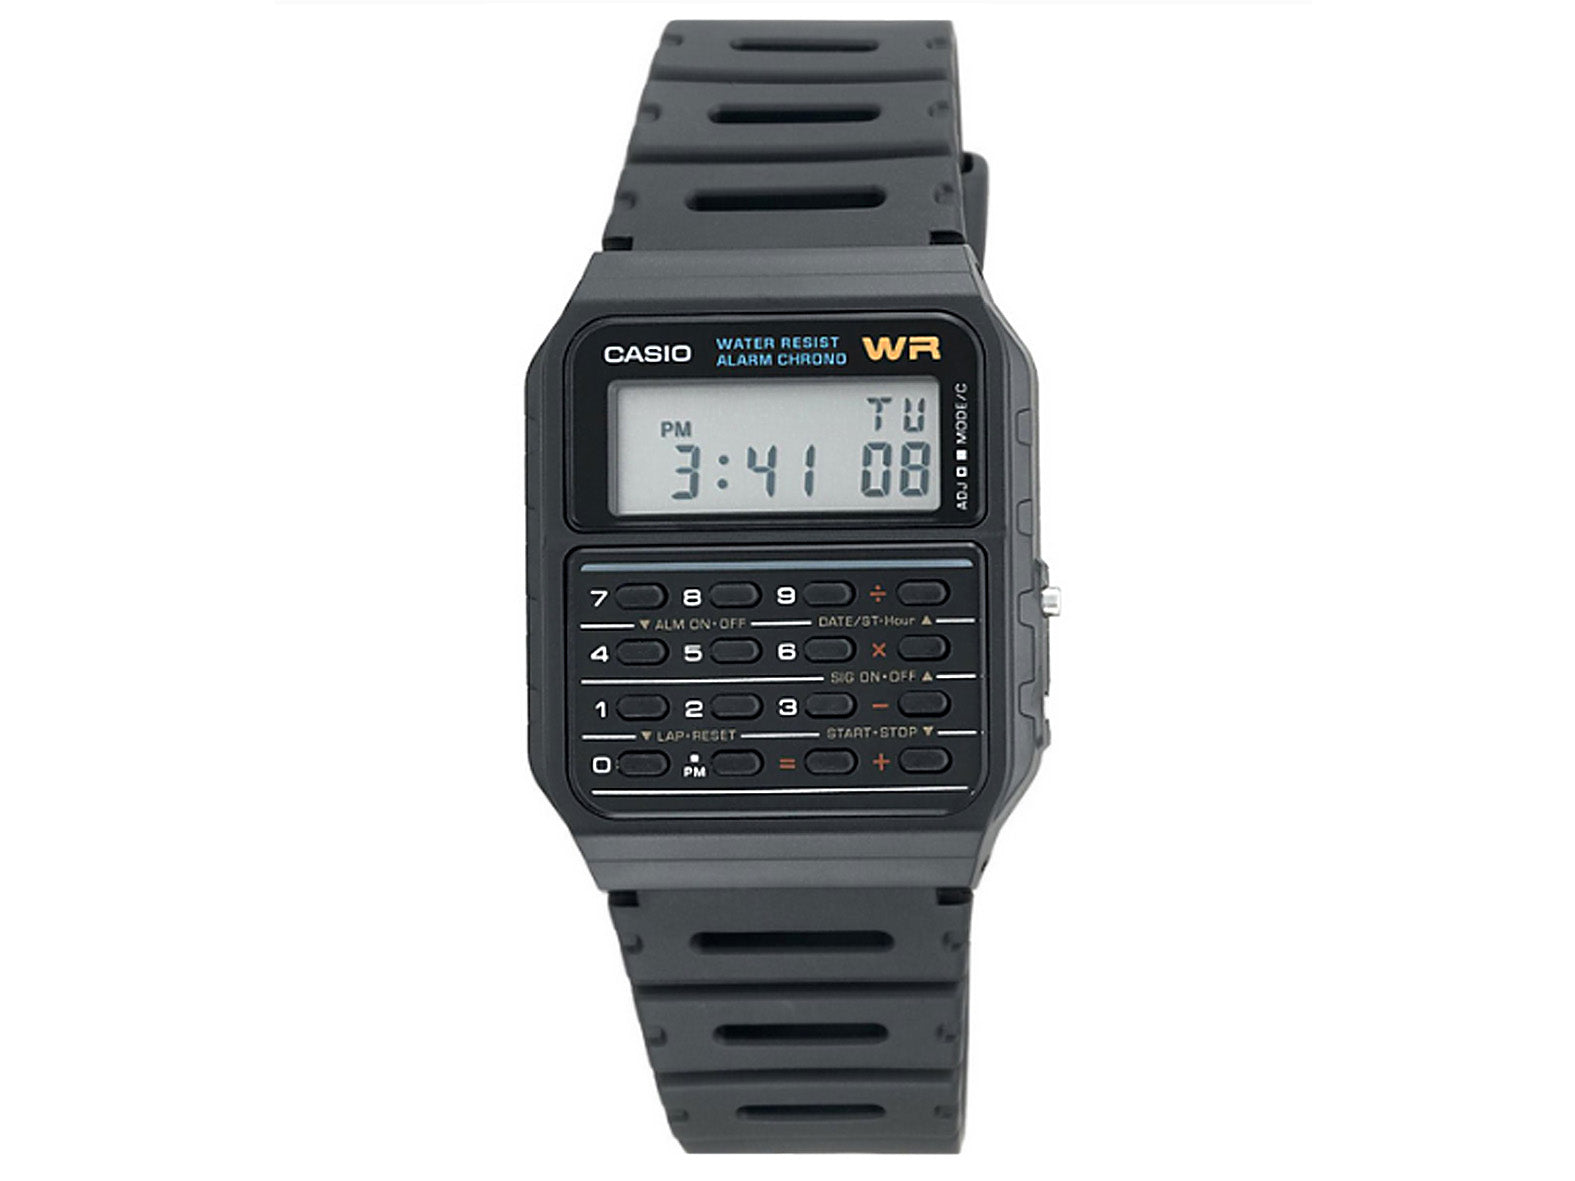 CASIO - CALCULATOR, BLACK RESIN BAND